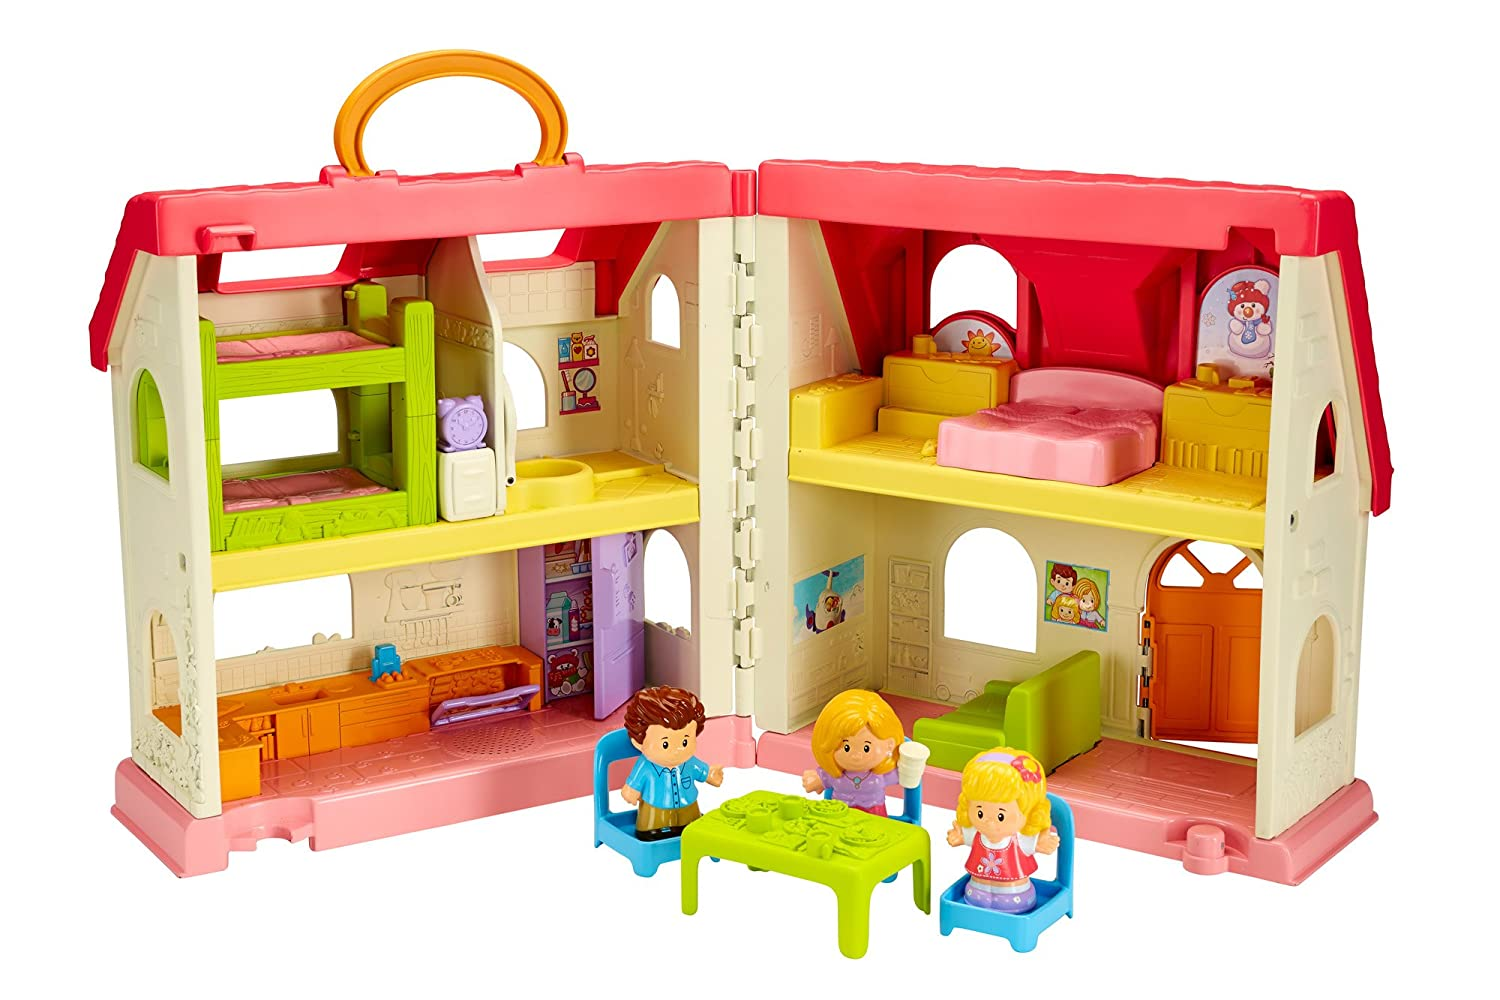 Fisher price doll house furniture - Amazon Com Fisher Price Little People Surprise Sounds Home Toys Games